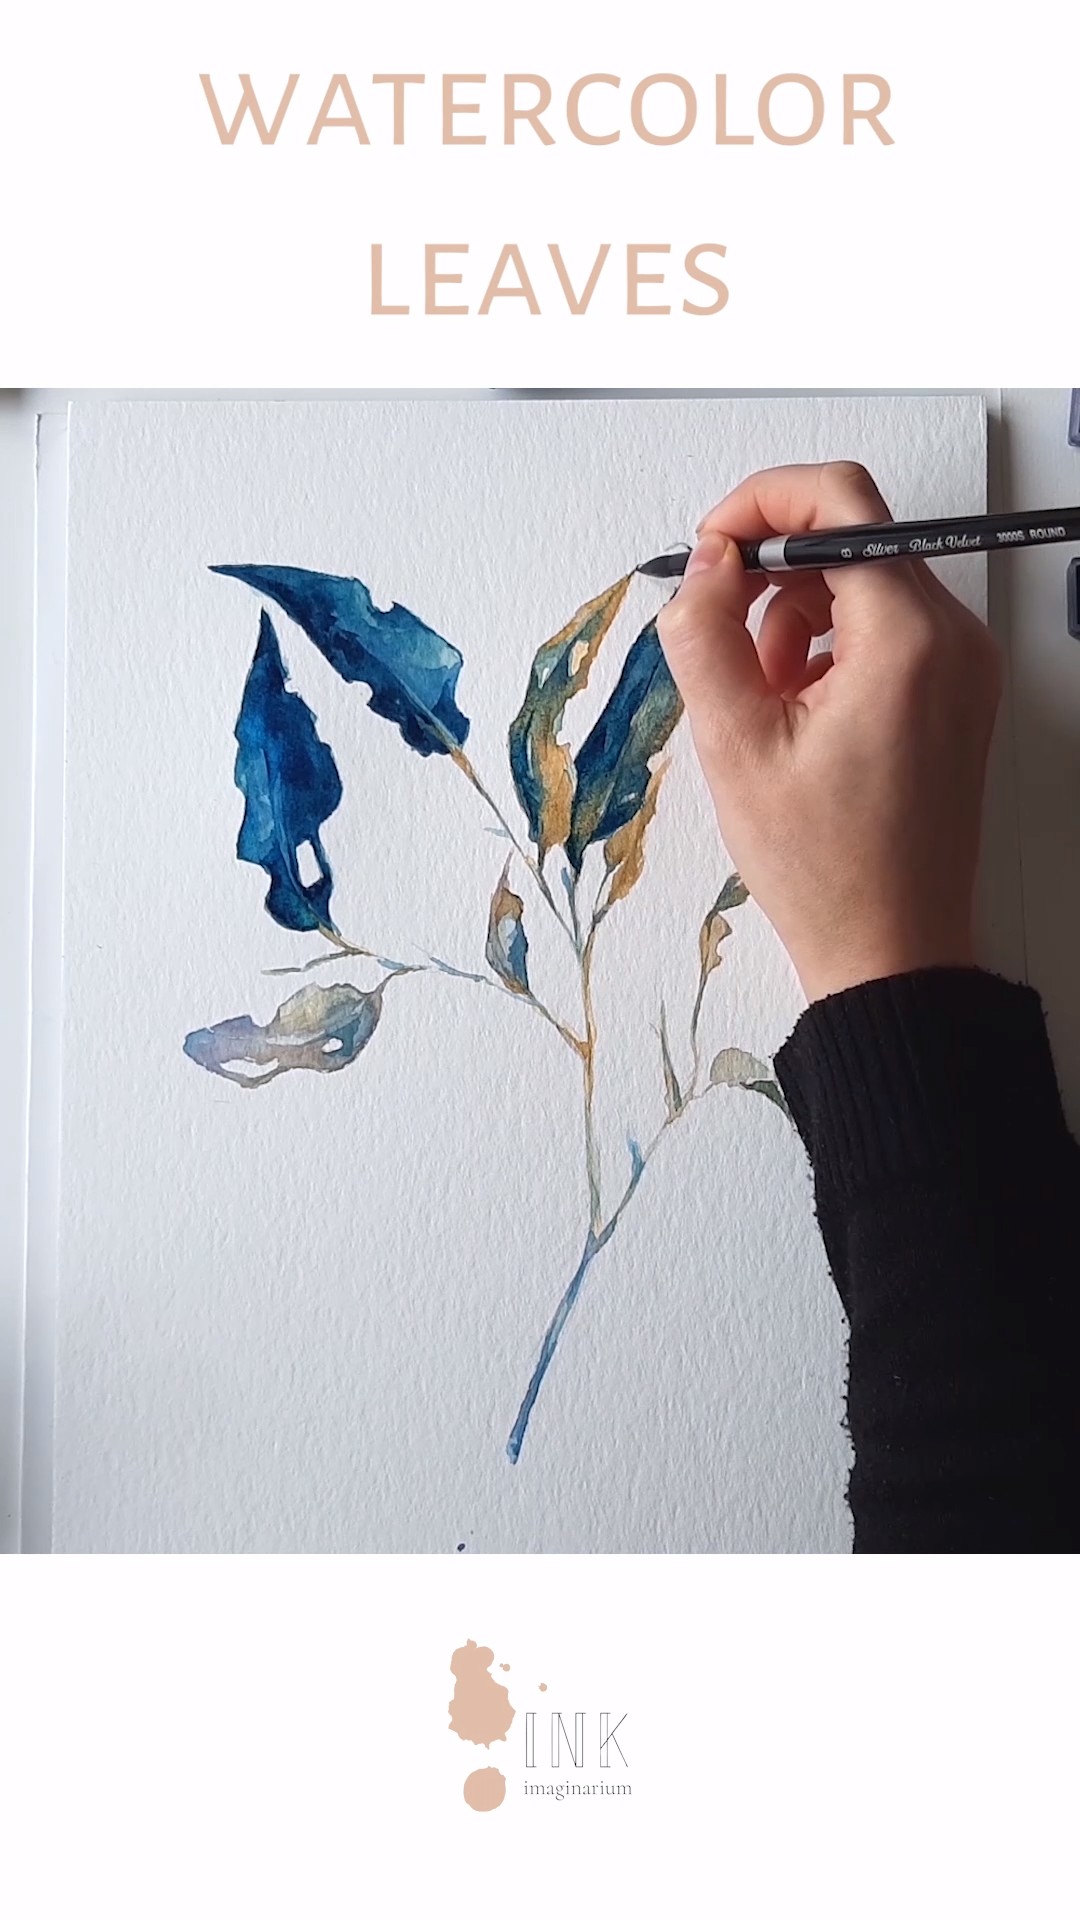 Do you love botanical drawings? Here you can see the process of this painting in watercolor, and if you enjoy it you can see more videos in the blog! All created by the visual artist Laura Manteca Martin, from Ink Imaginarium. #botanicalwatercolor #botanicalpainting #botanicallove #watercolorlove #watercolortimelapse #paintingtimelapse #watercolorpainting